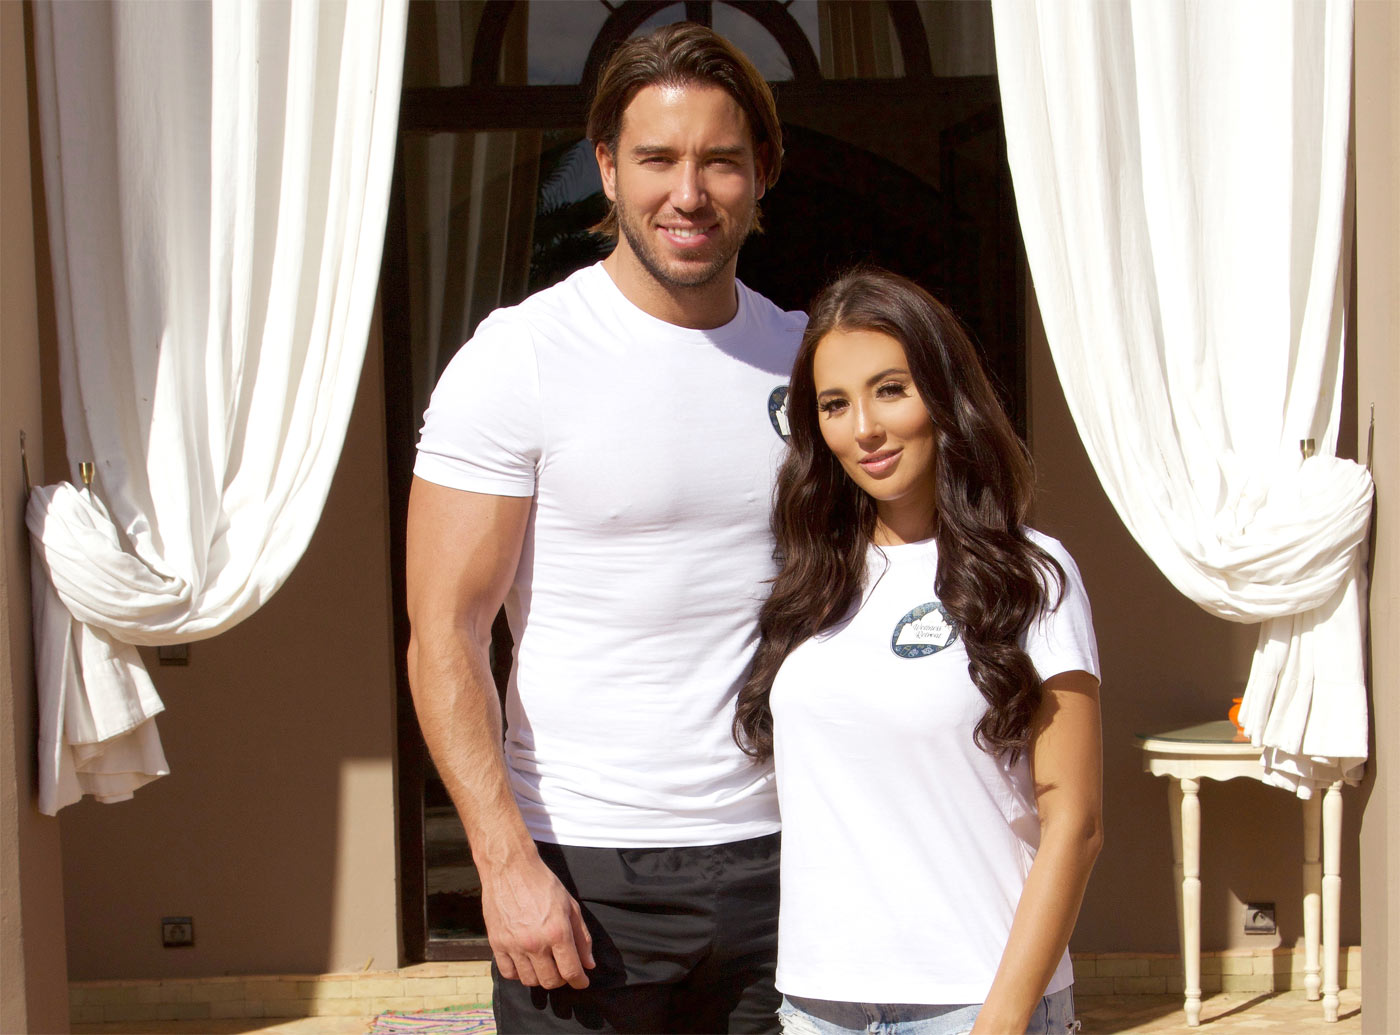 James Lock and Yazmin Oukhellou